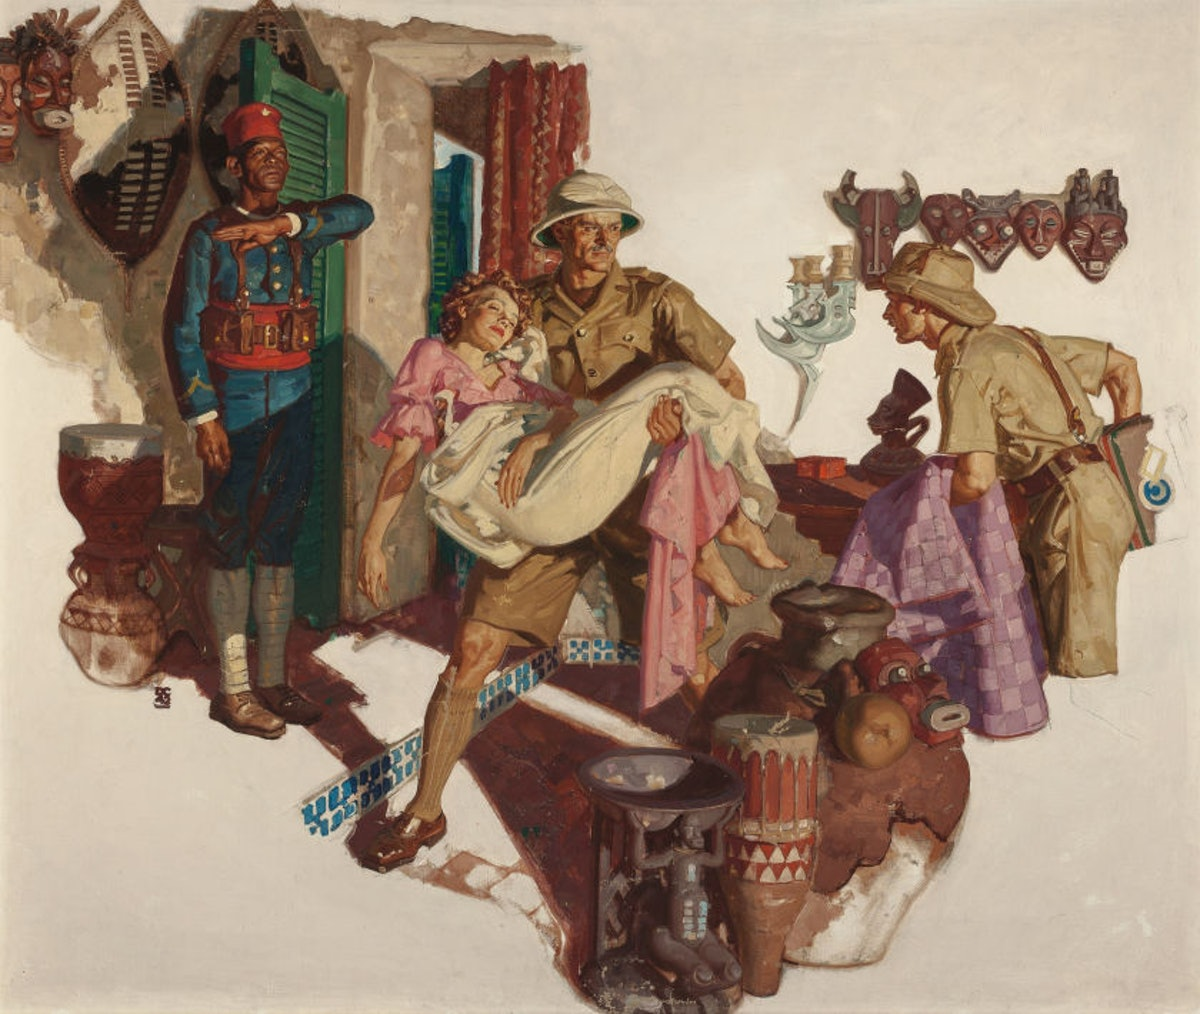 Dean Cornwell's A Hasty Exit